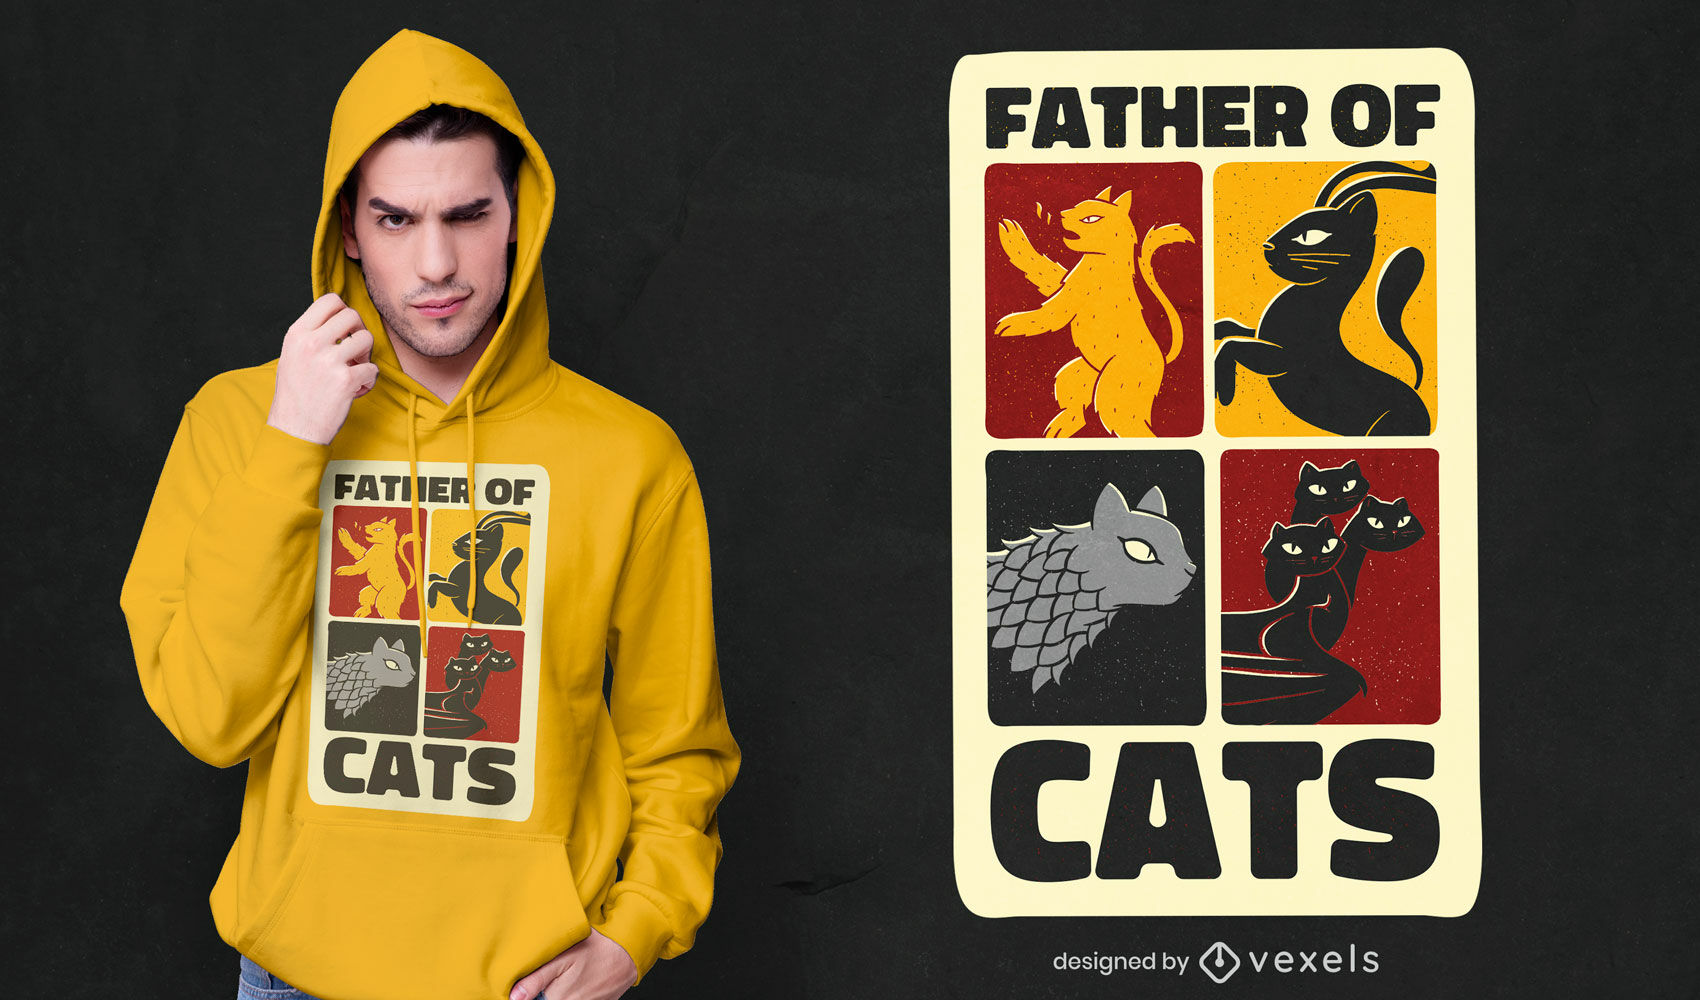 Father of cats t-shirt design